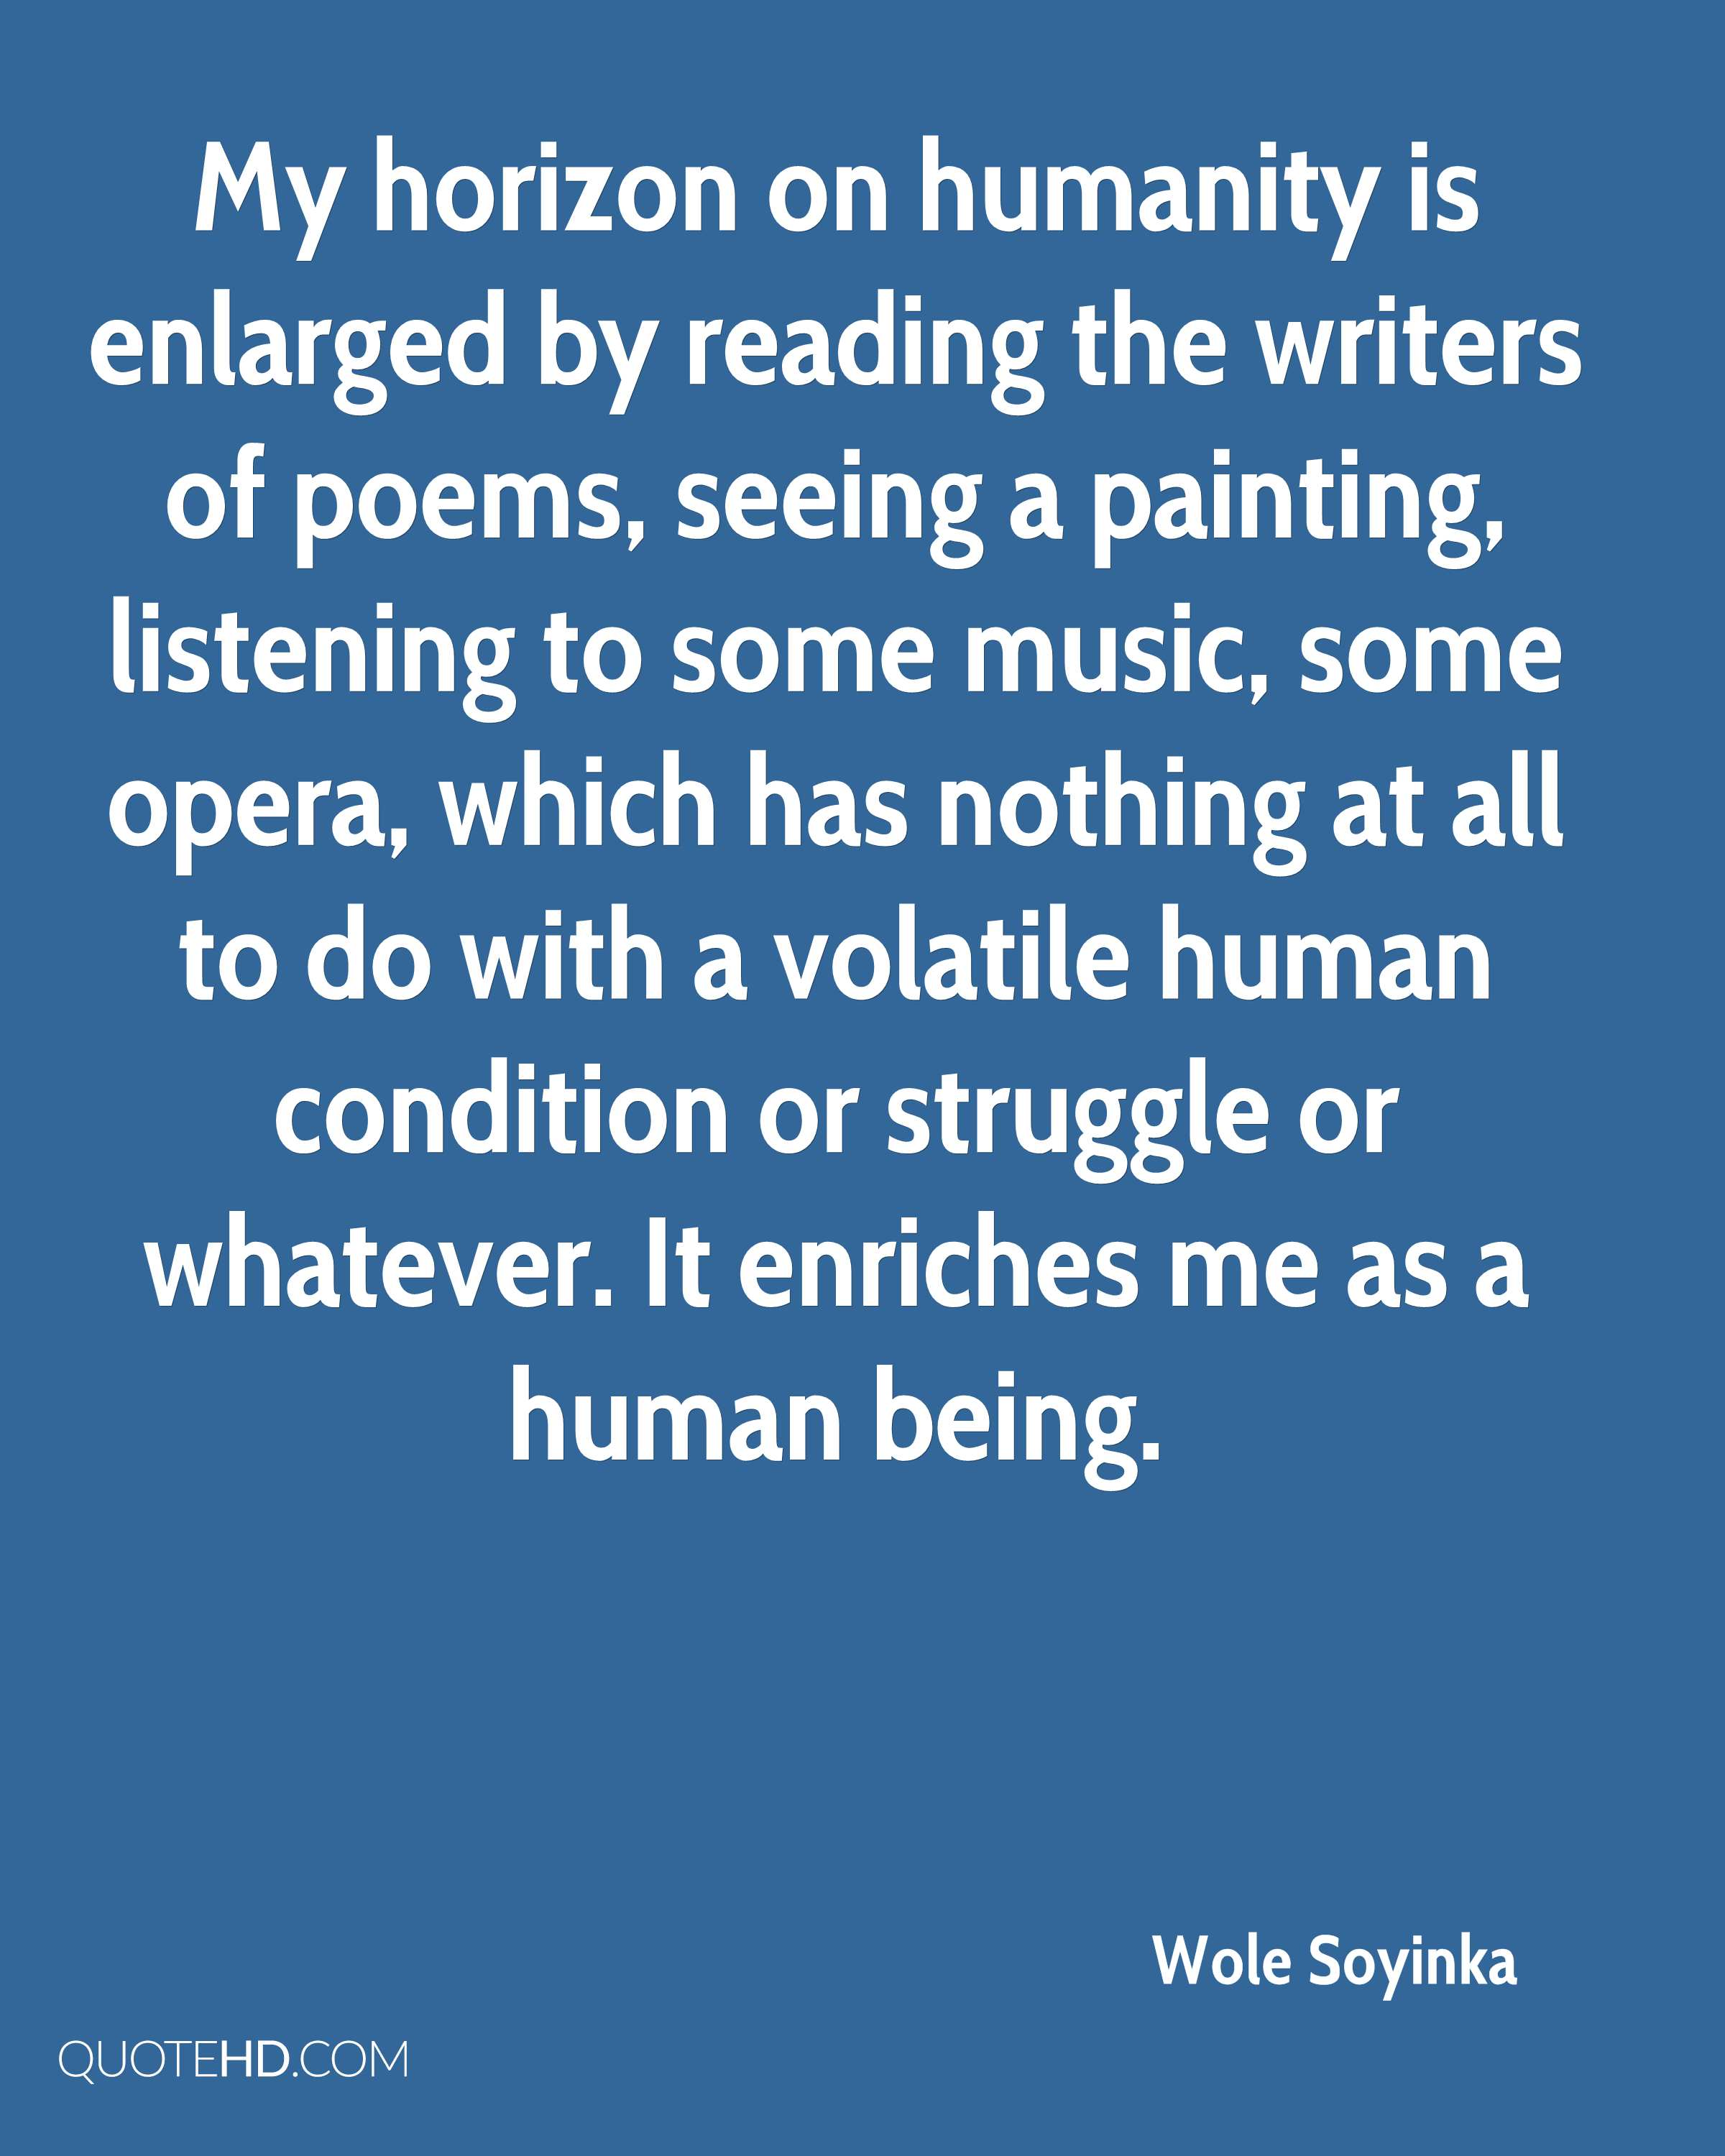 My horizon on humanity is enlarged by reading the writers of poems, seeing a painting, listening to some music, some opera, which has nothing at all to do with a volatile human condition or struggle or whatever. It enriches me as a human being.